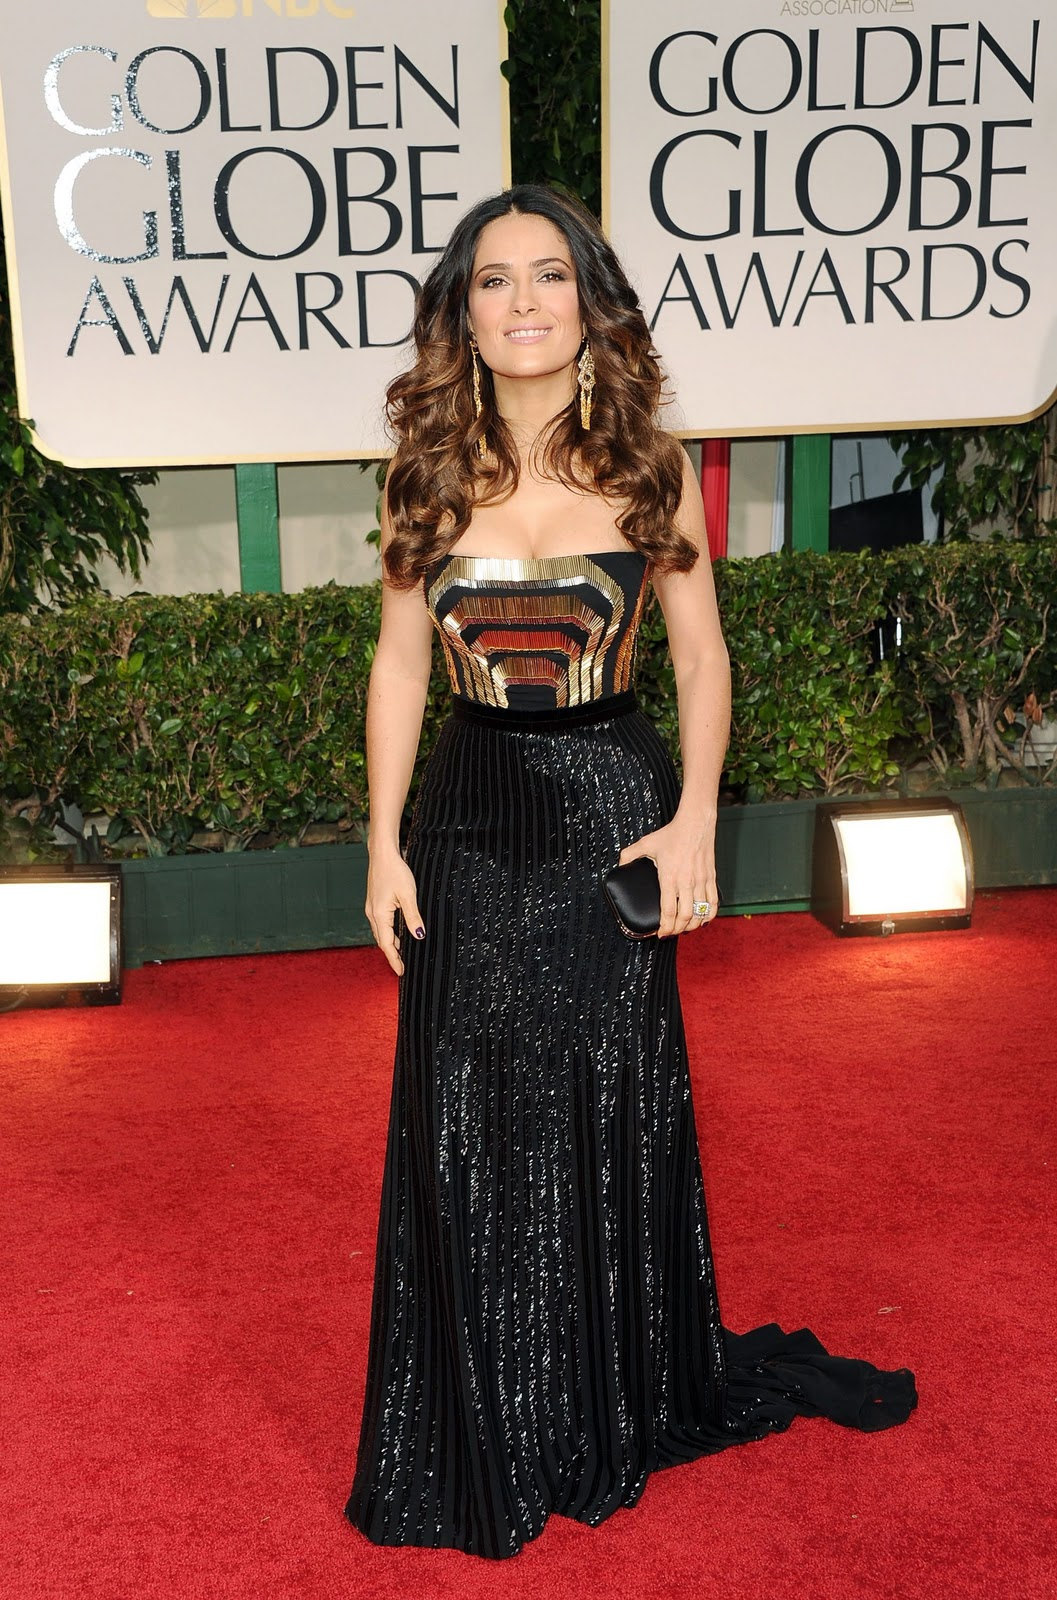 http://2.bp.blogspot.com/-zmTjZ64-1cw/TxNykugTy7I/AAAAAAAABow/Rdxxal_XdgU/s1600/CU-Salma+Hayek+arrives+at+the+69th+Annual+Golden+Globe+Awards-02.jpg